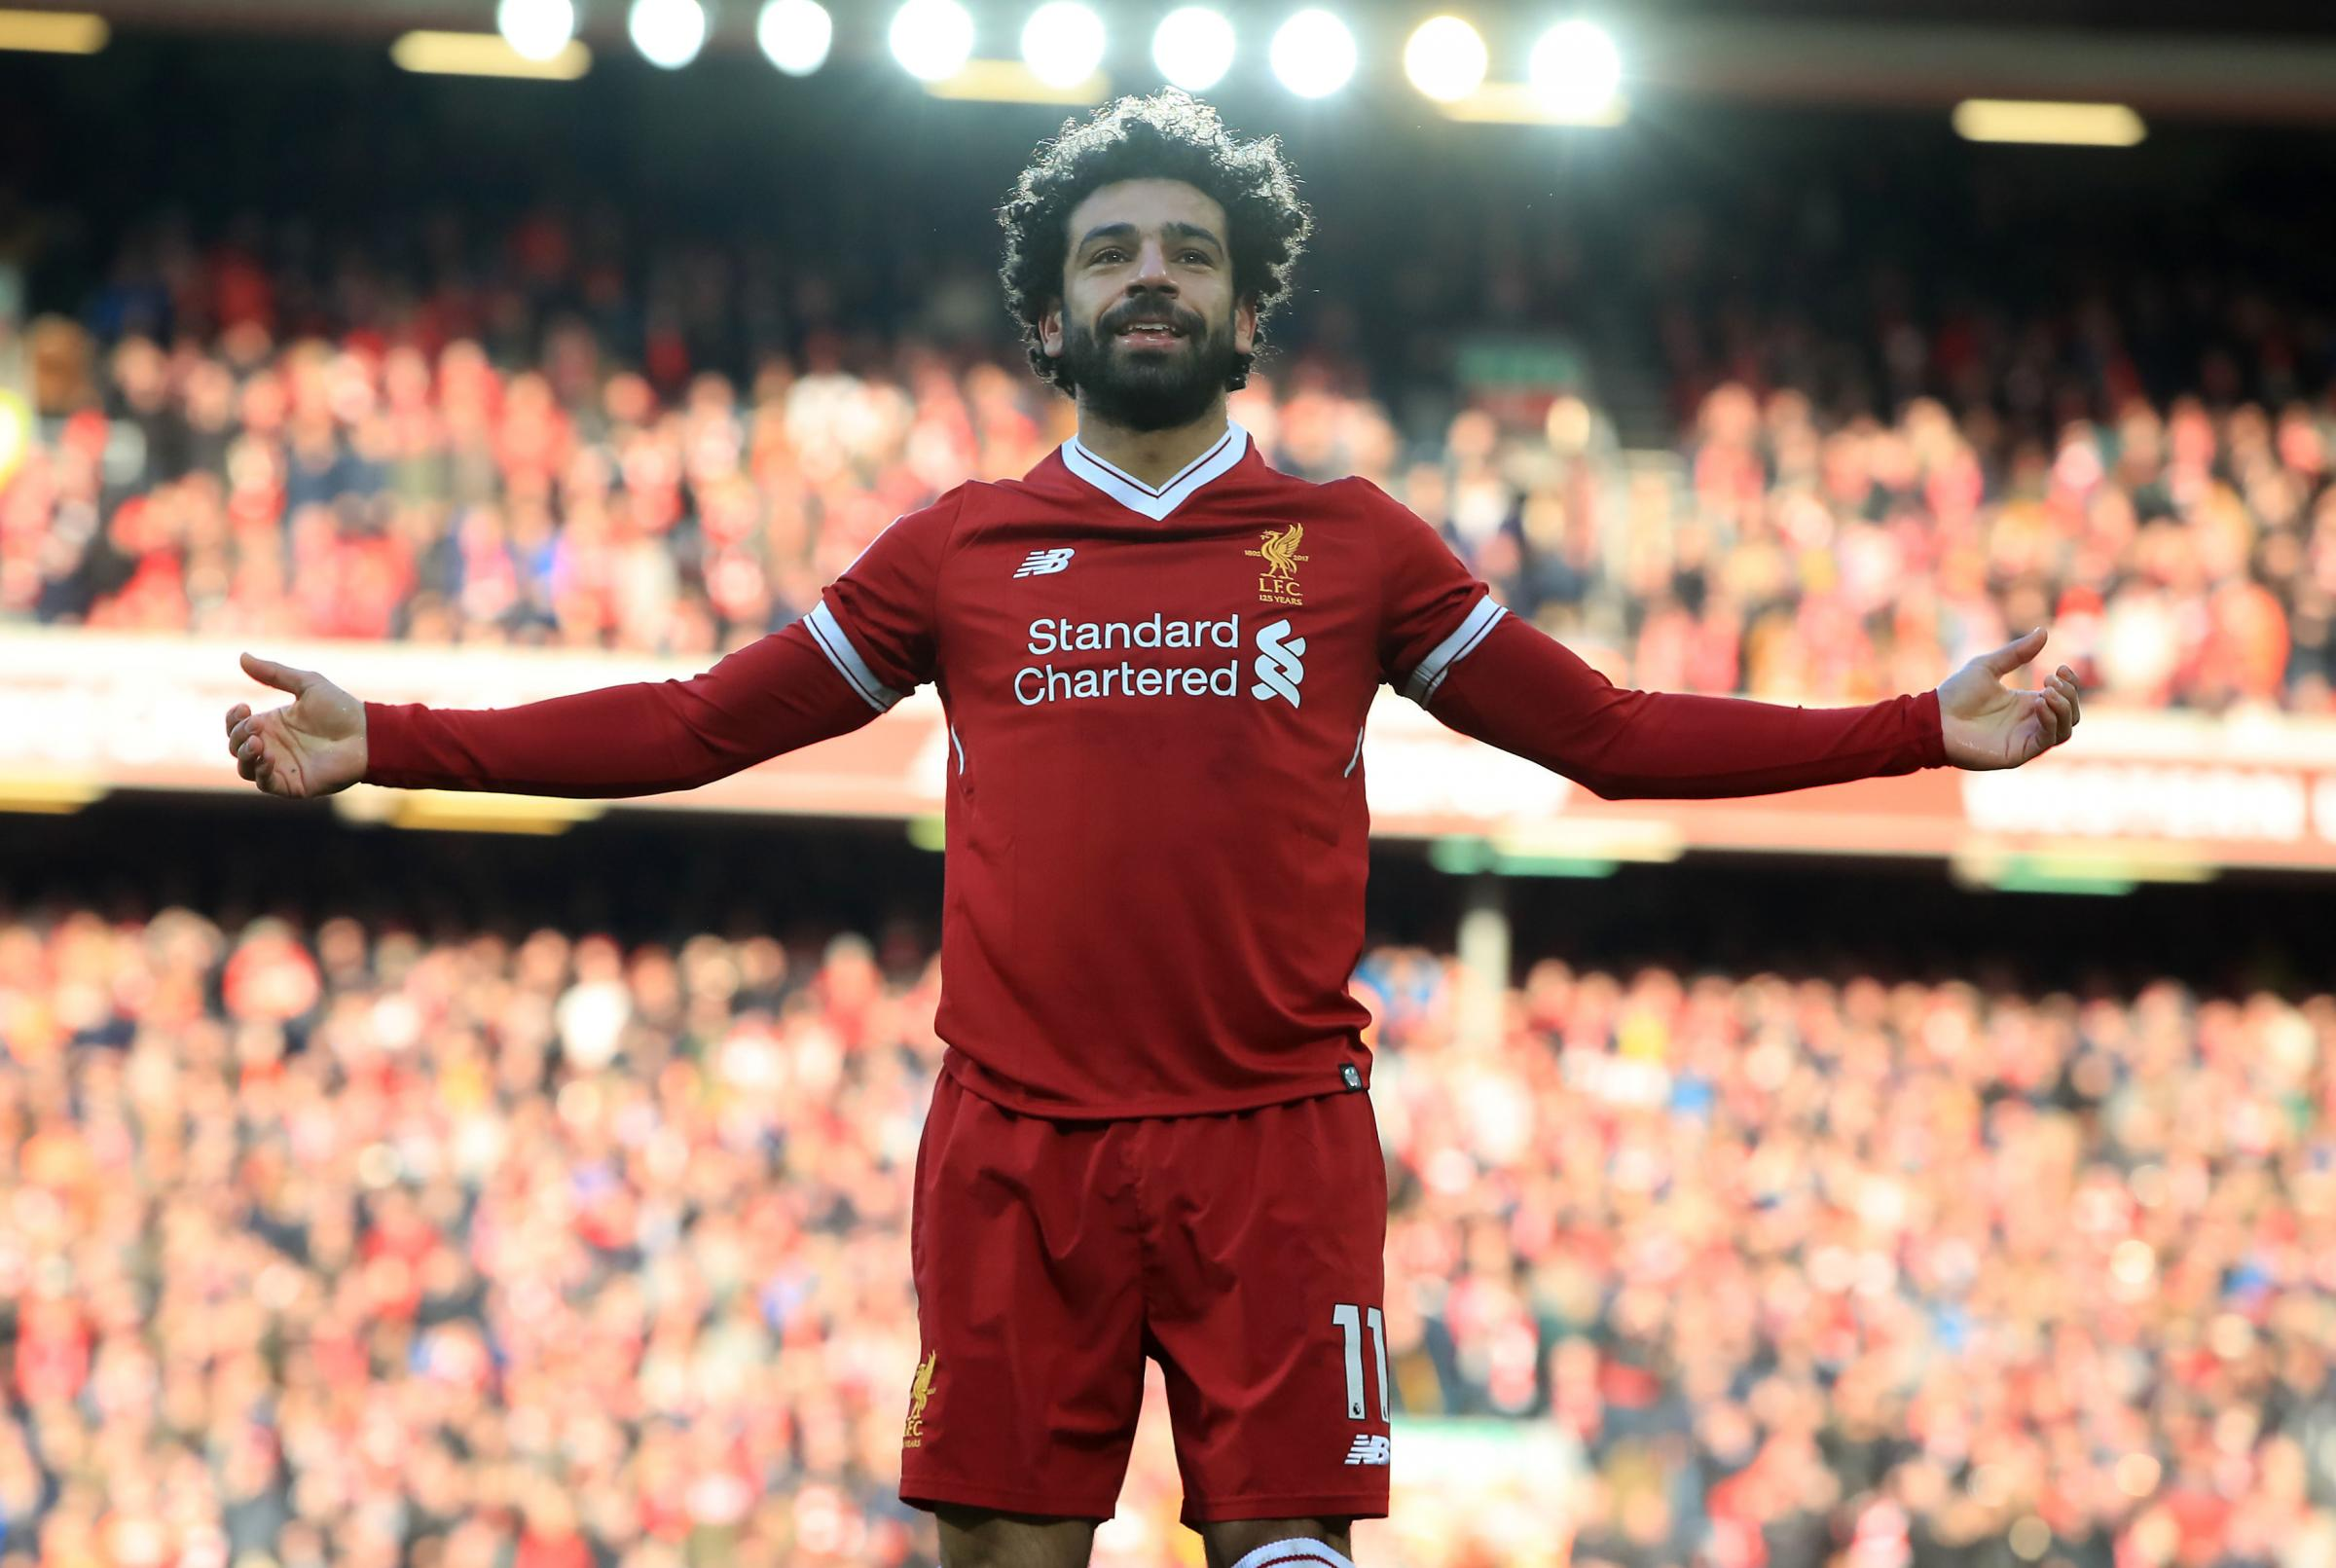 Liverpool footballer Mo Salah has gone from humble beginnings in Egypt to the Champions League final